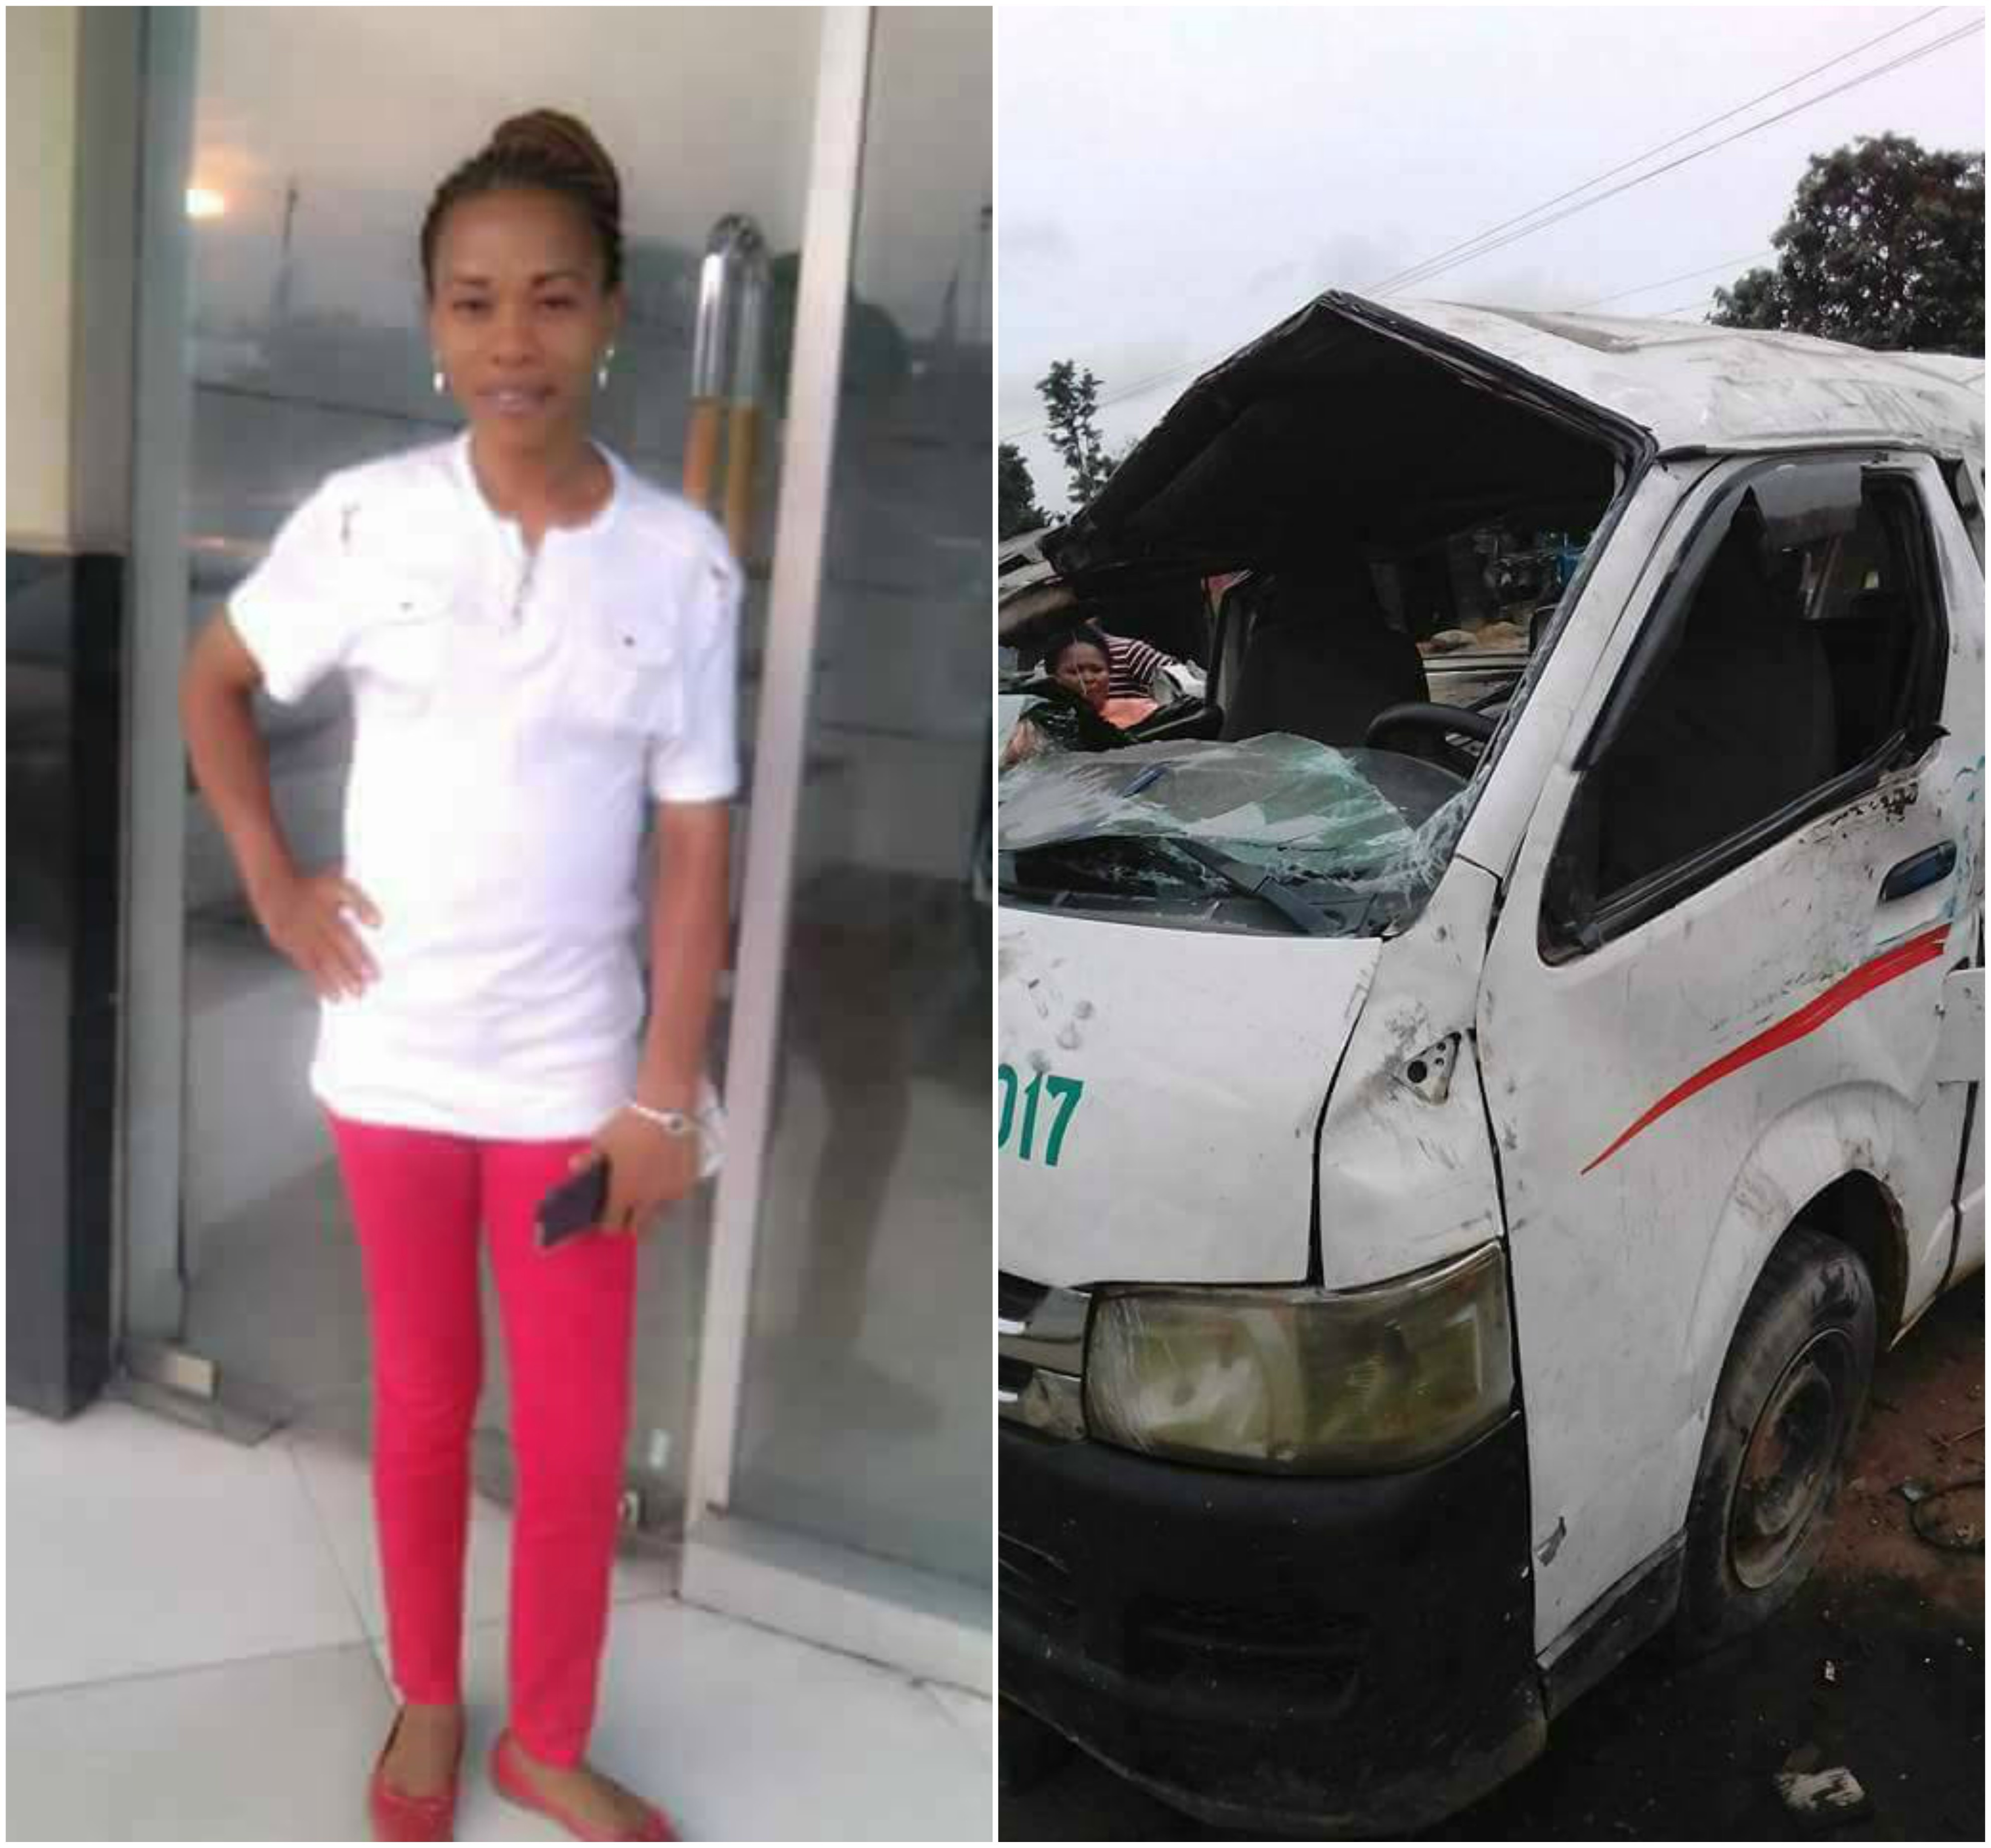 Photos: Pregnant woman dies in fatal accident